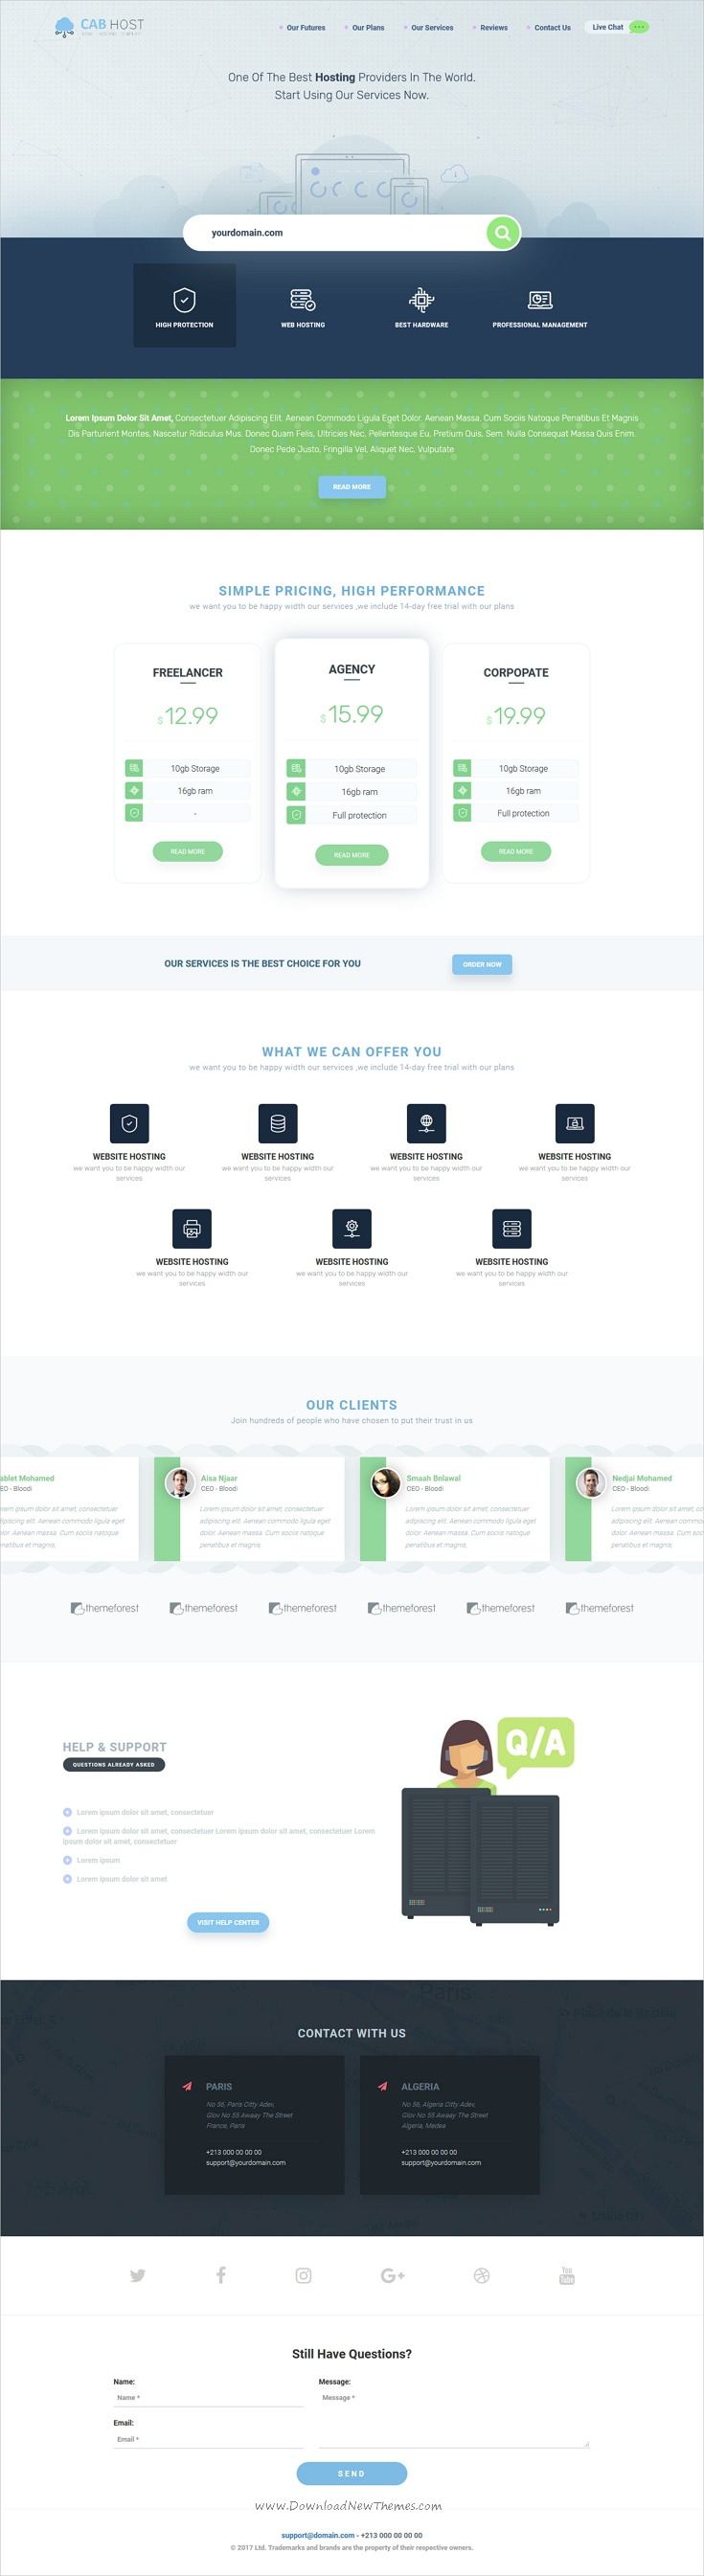 Cabhost Is Clean And Modern Design Onepage Bootstrap Template For